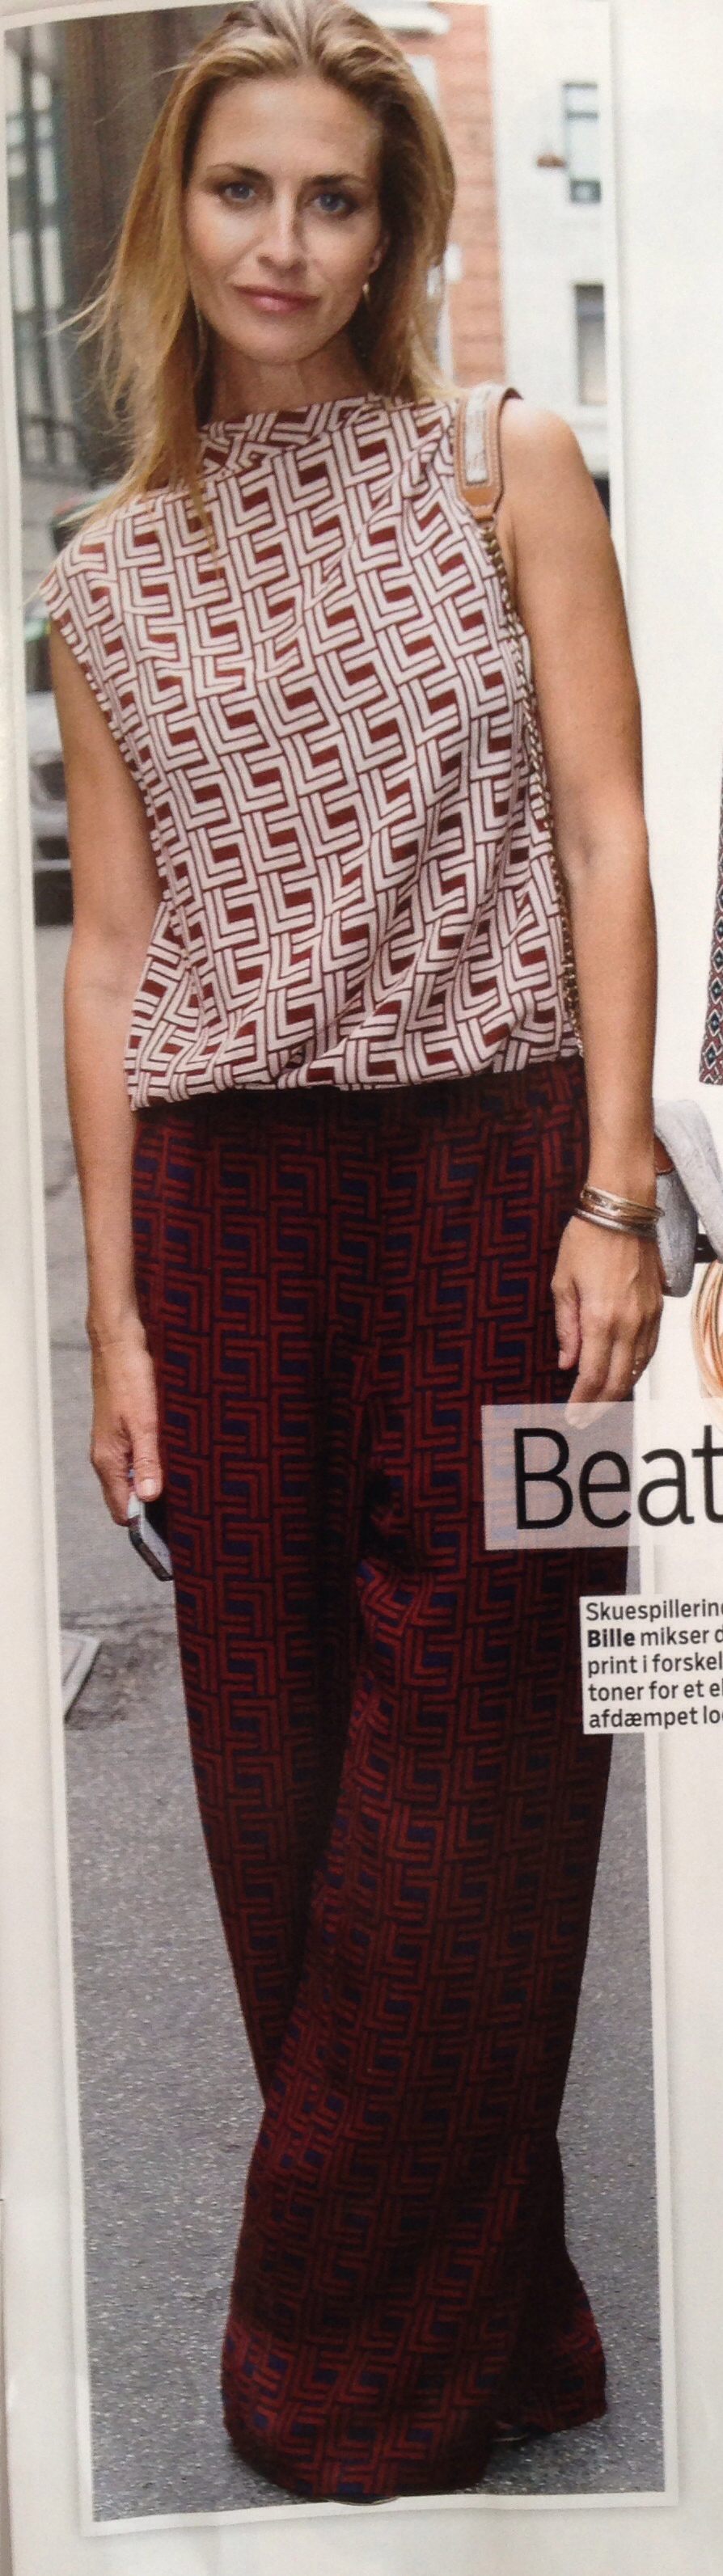 Beate Bille in a great outfit from Day